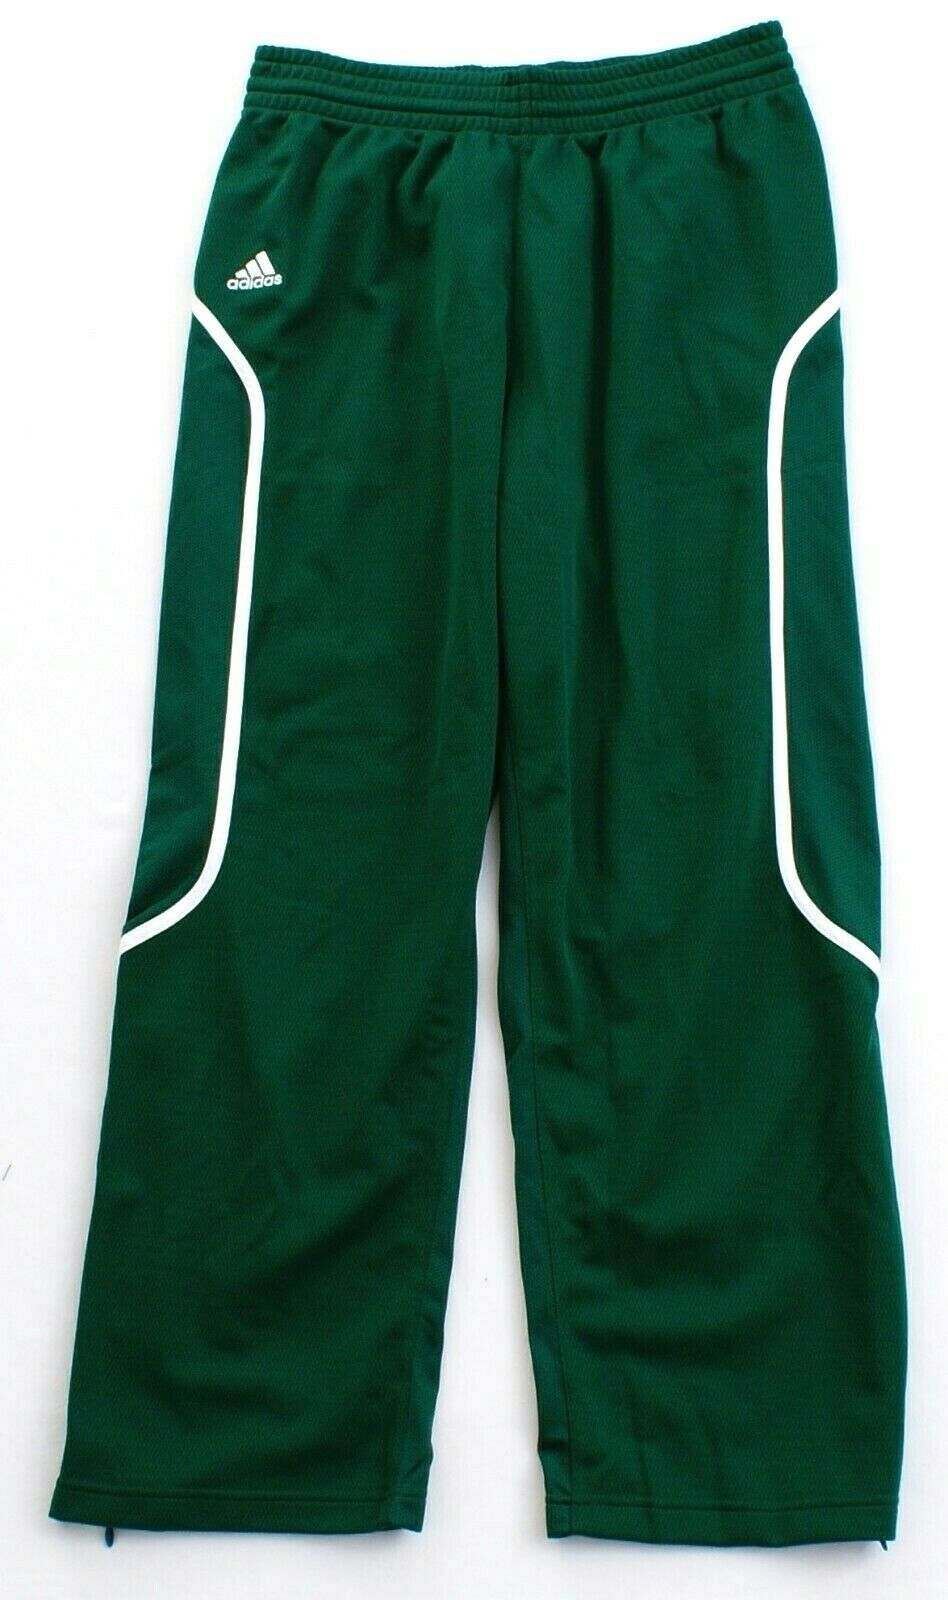 new appearance best cheap details for Adidas Climalite Pants: 41 listings